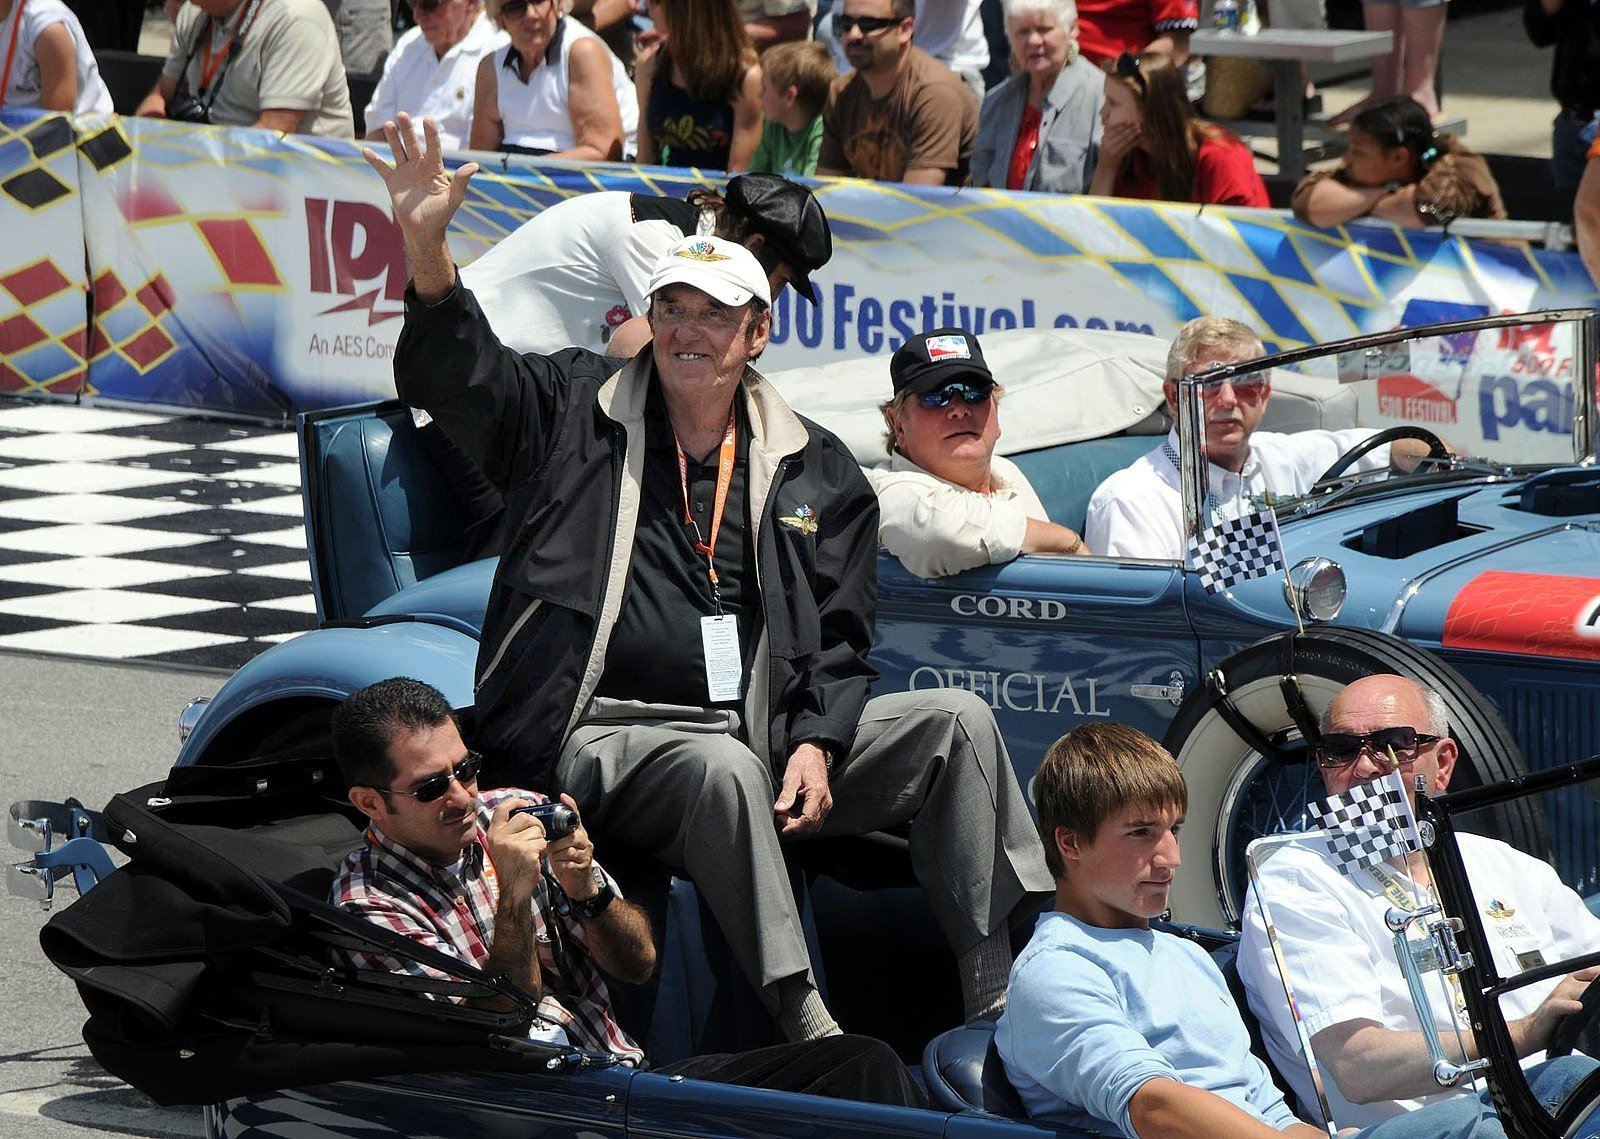 Jim Nabors at the opening of the Indianapolis 500 on May 24, 2008. | Photo: Wikimedia Commons, BSquared AKA Family Paparazzi, CC BY 2.0